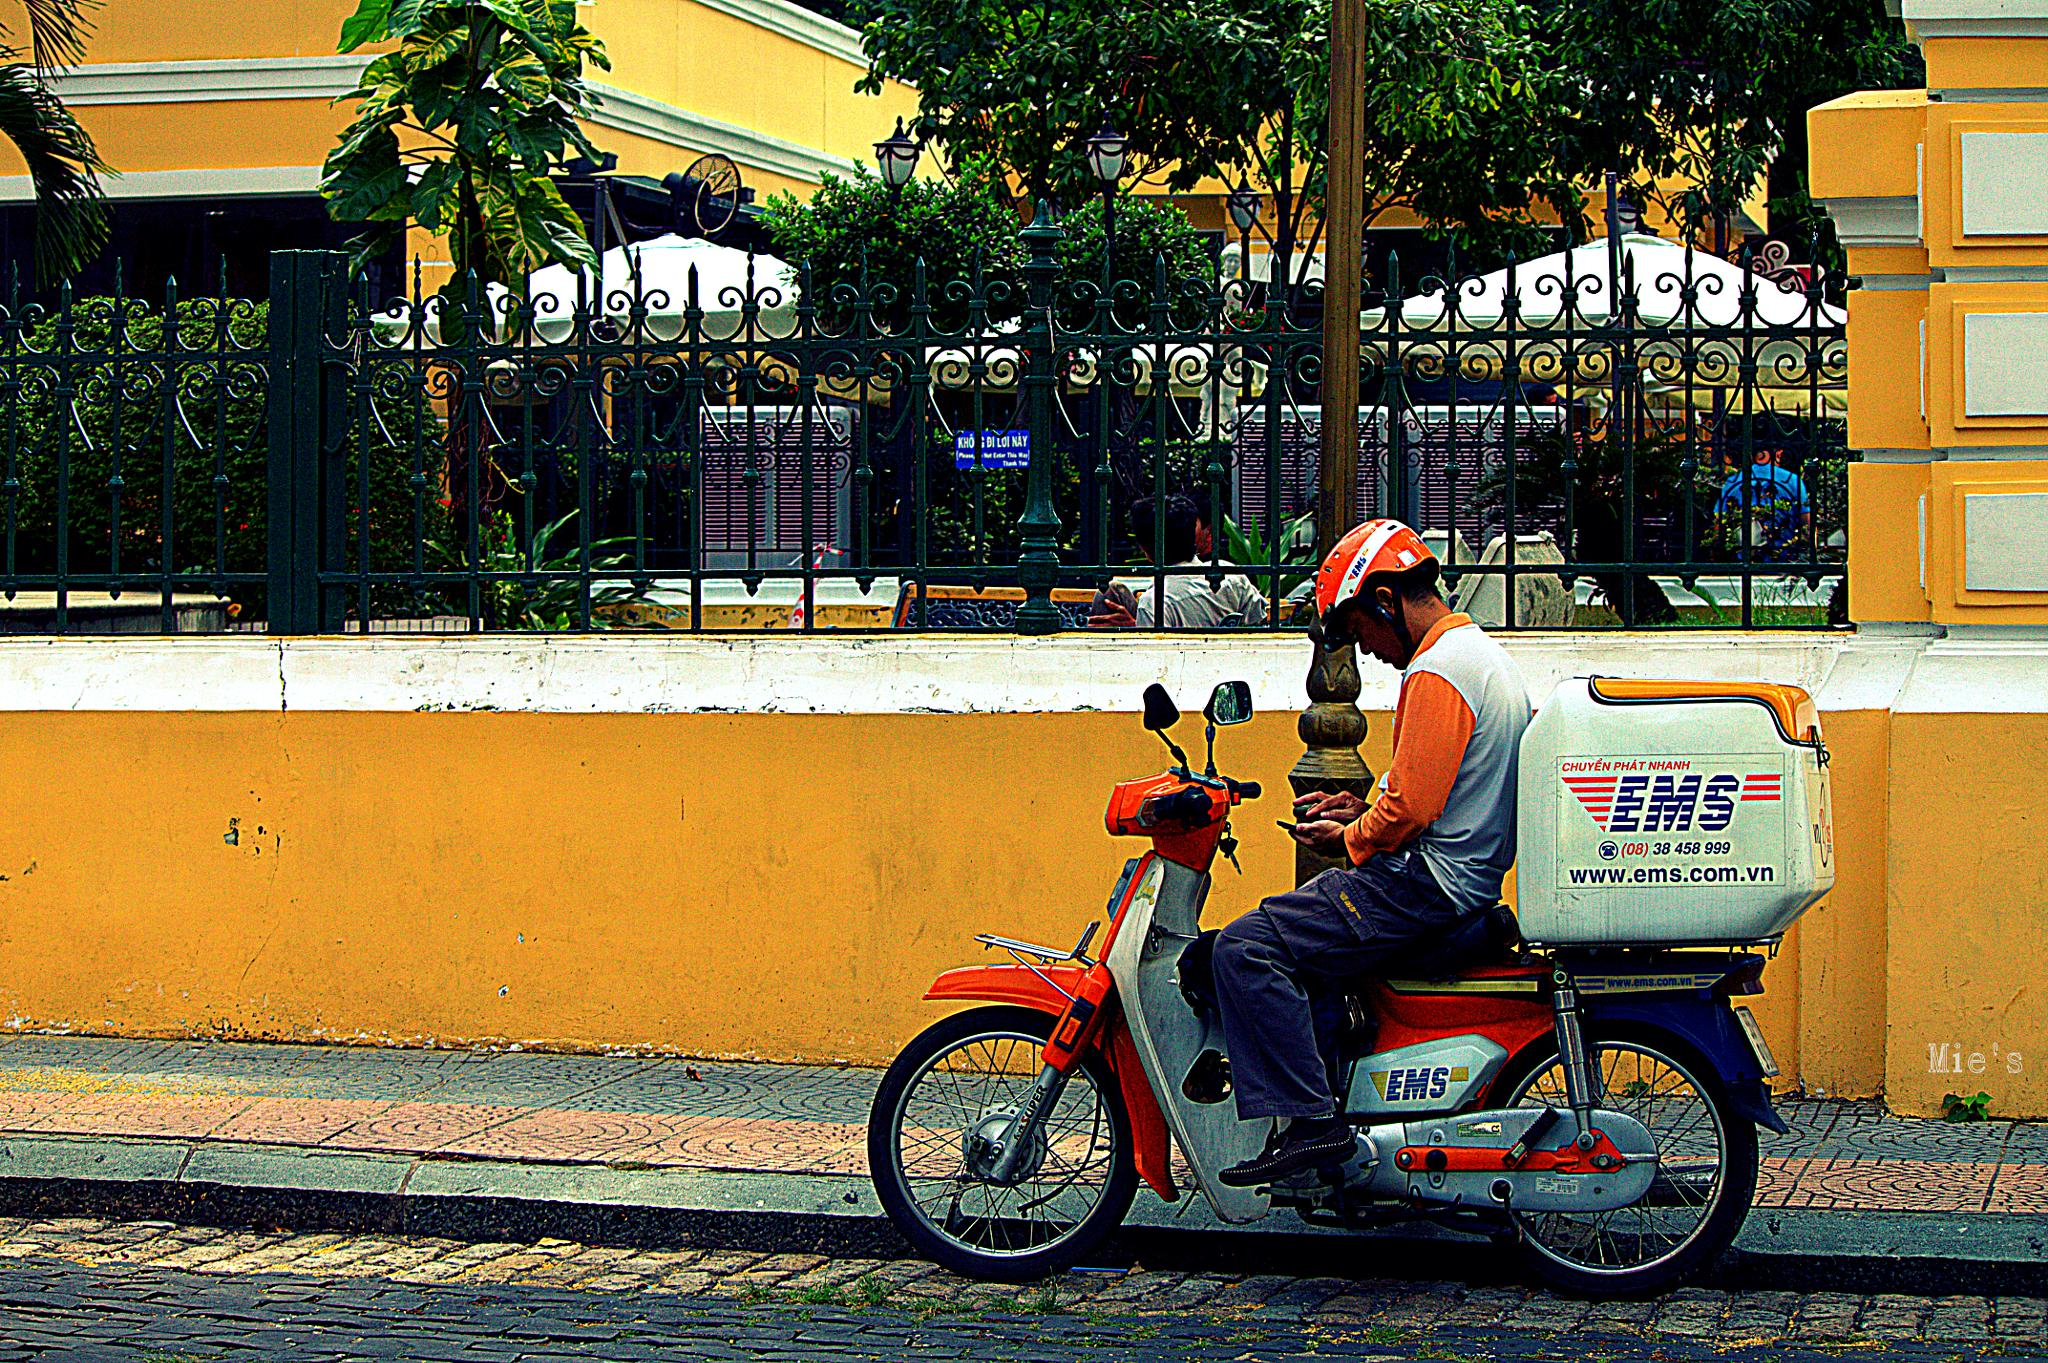 Mr Postman..searching for address..:-) by Amiez38